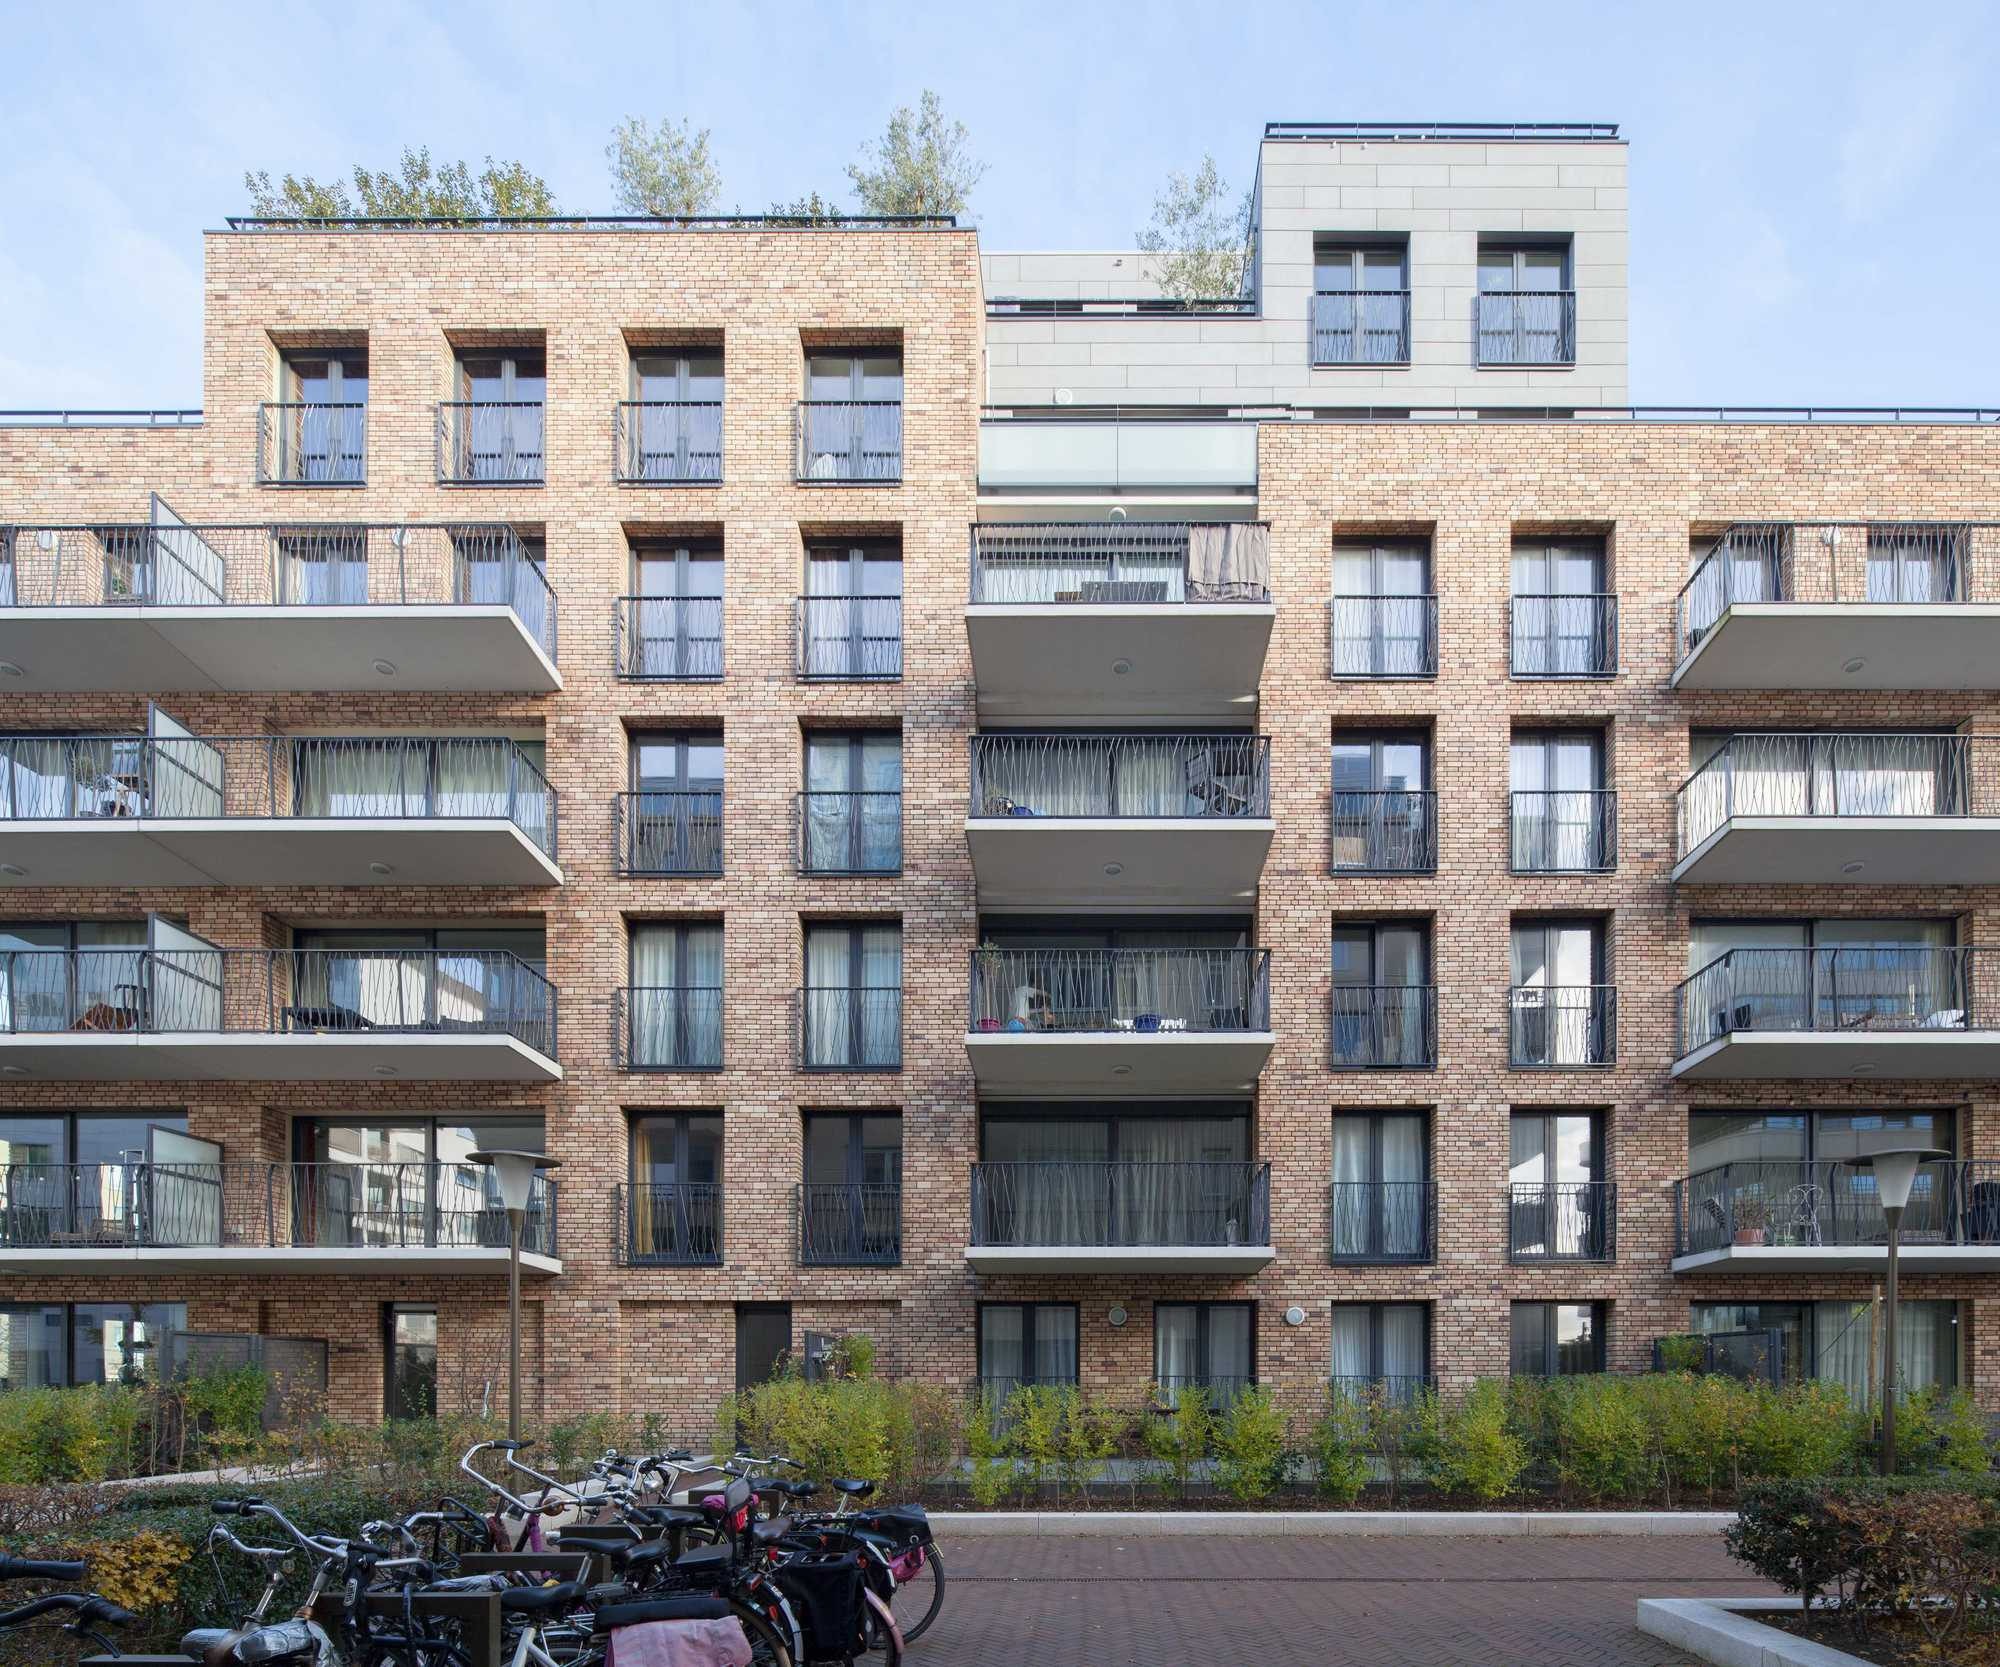 Apartement: De Halve Maen Apartment Building / Mecanoo